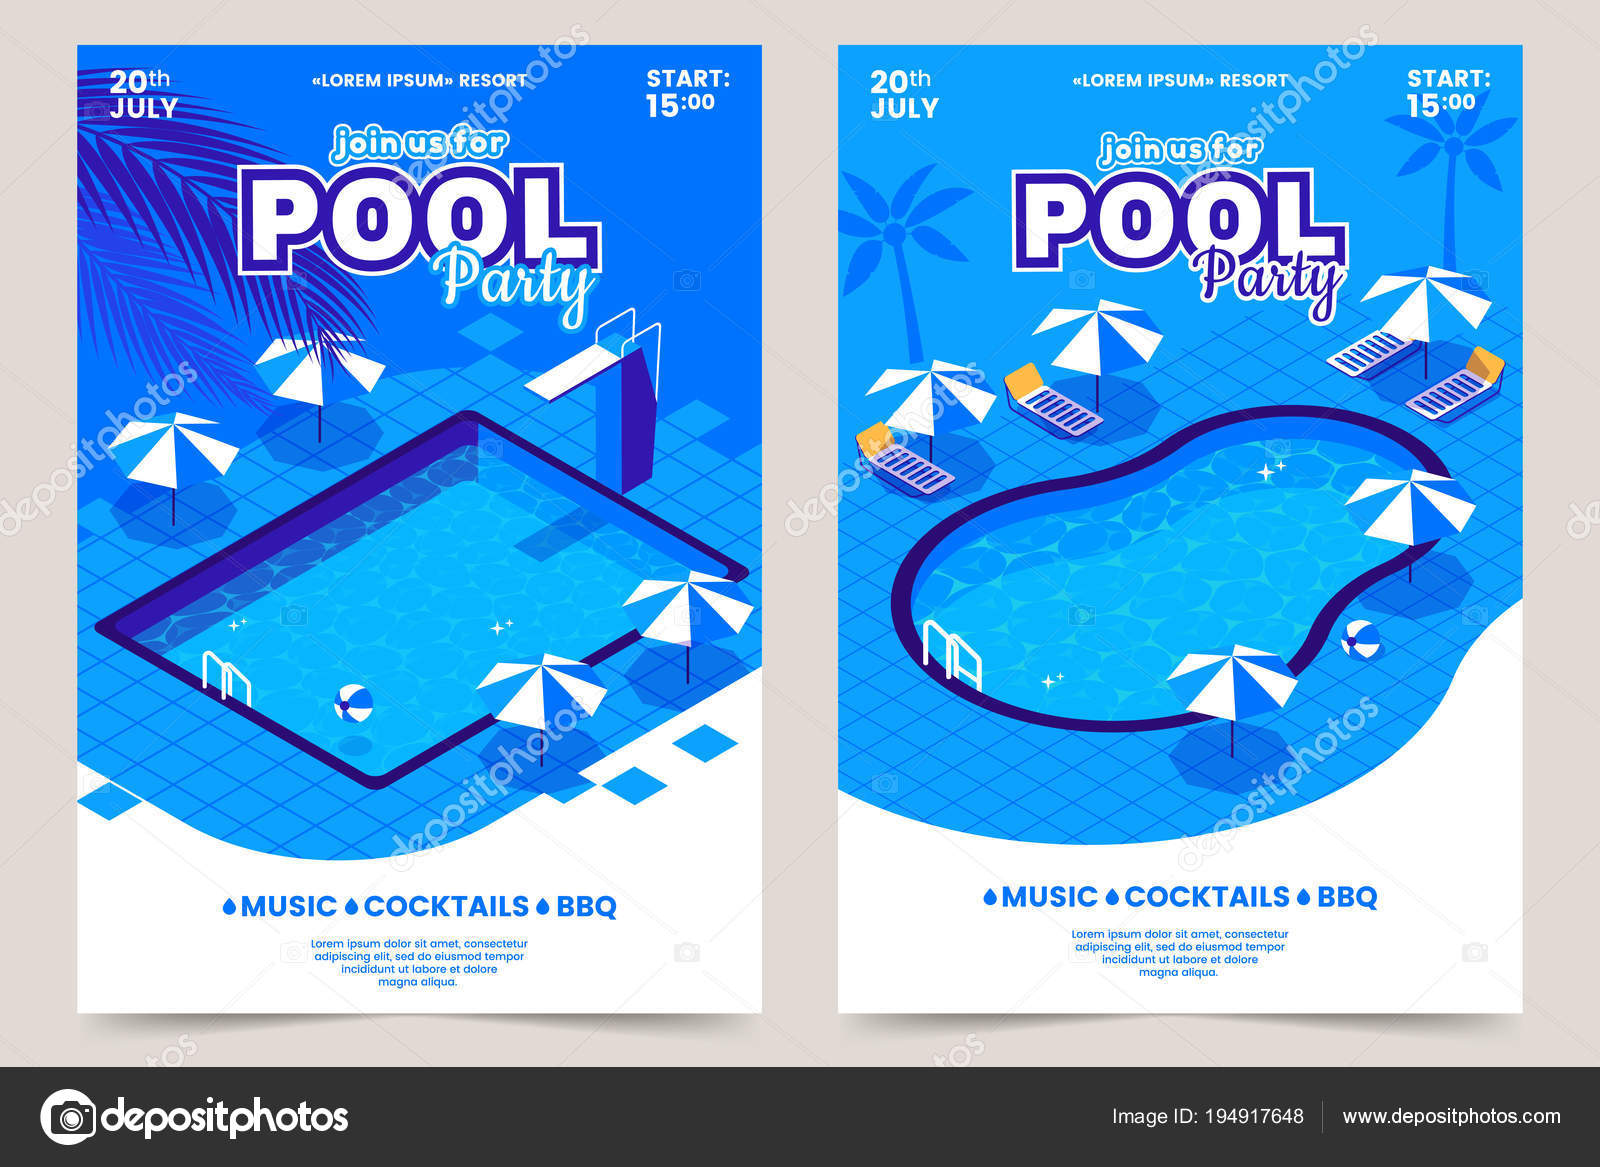 Summer Pool Party Invitation Poster. Isometric Water Swimming Pool With Sun  Beds, Umbrellas And